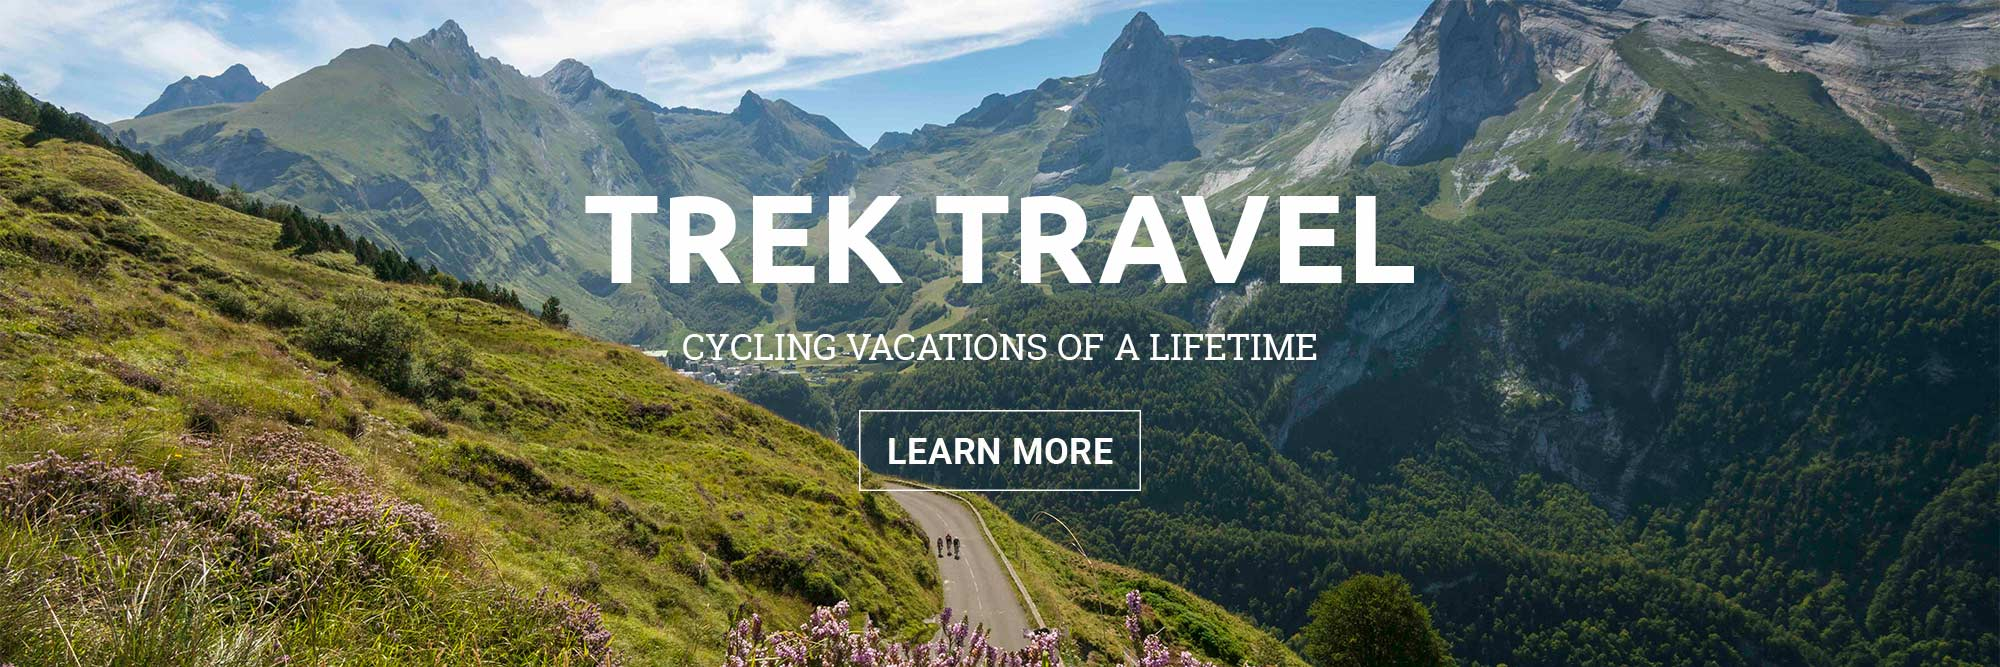 Book your Trek Travel through Harper's Cycling & Fitness